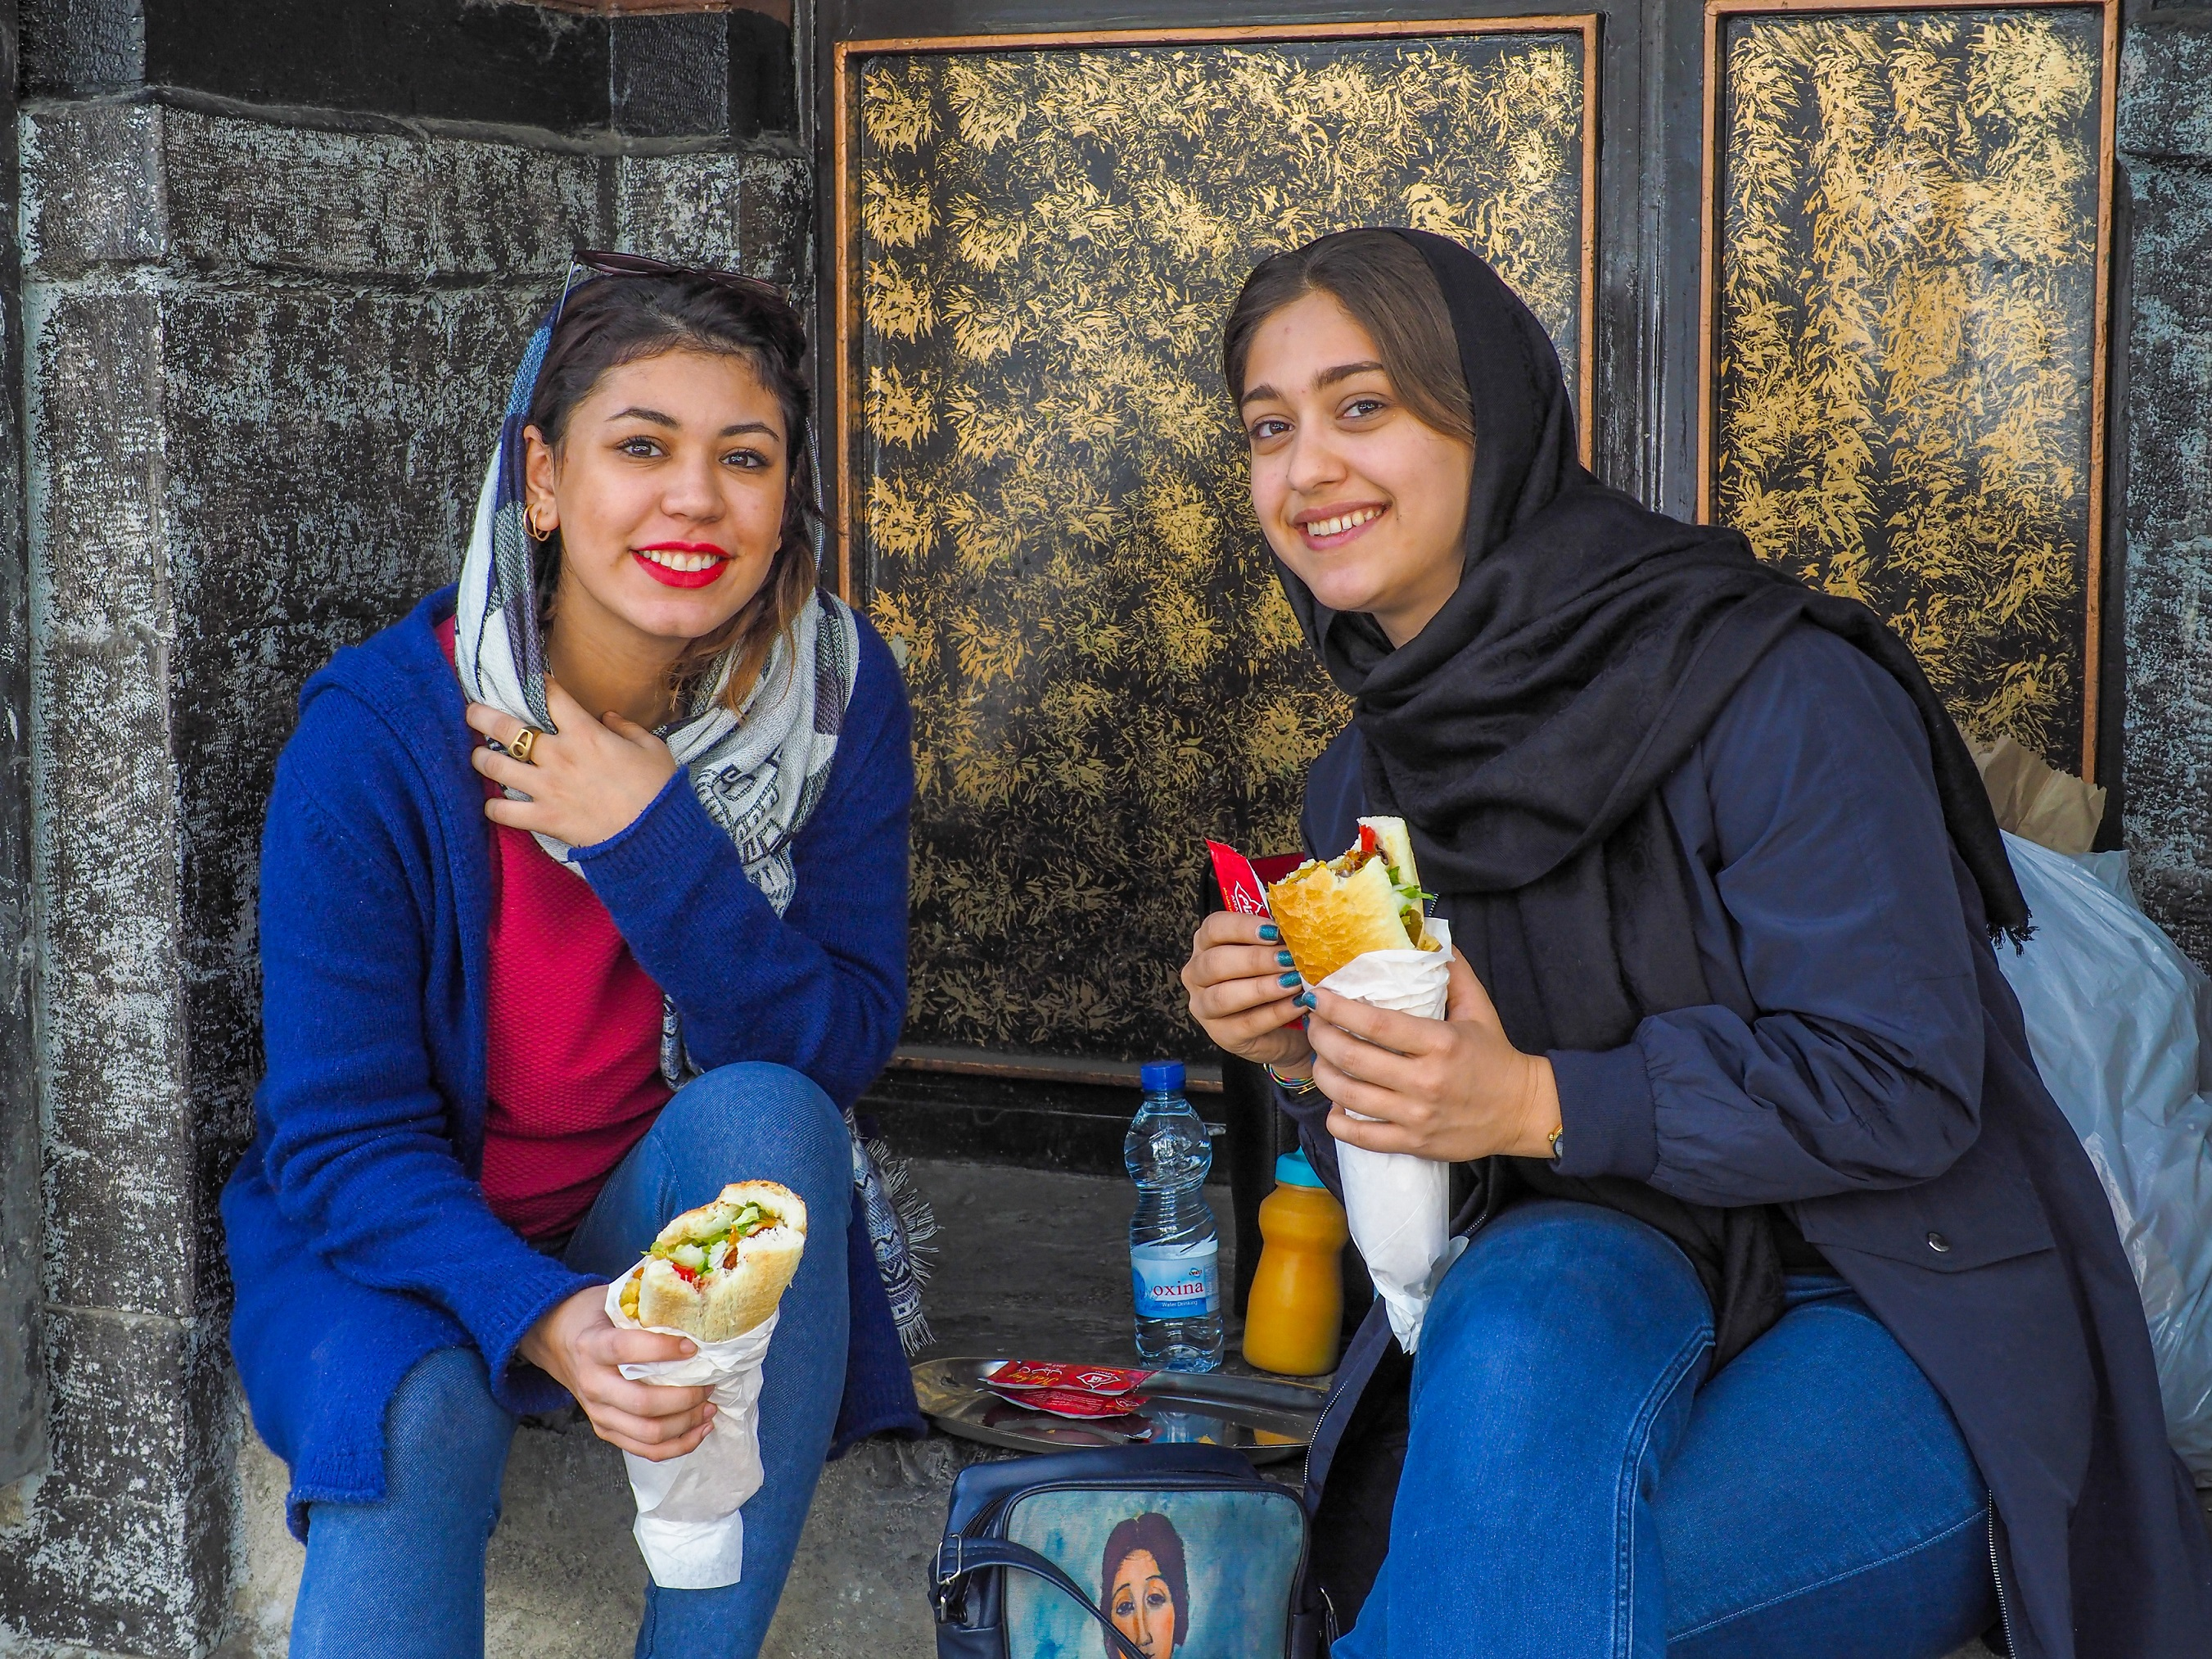 Young Iranian women (Intrepid/PA)